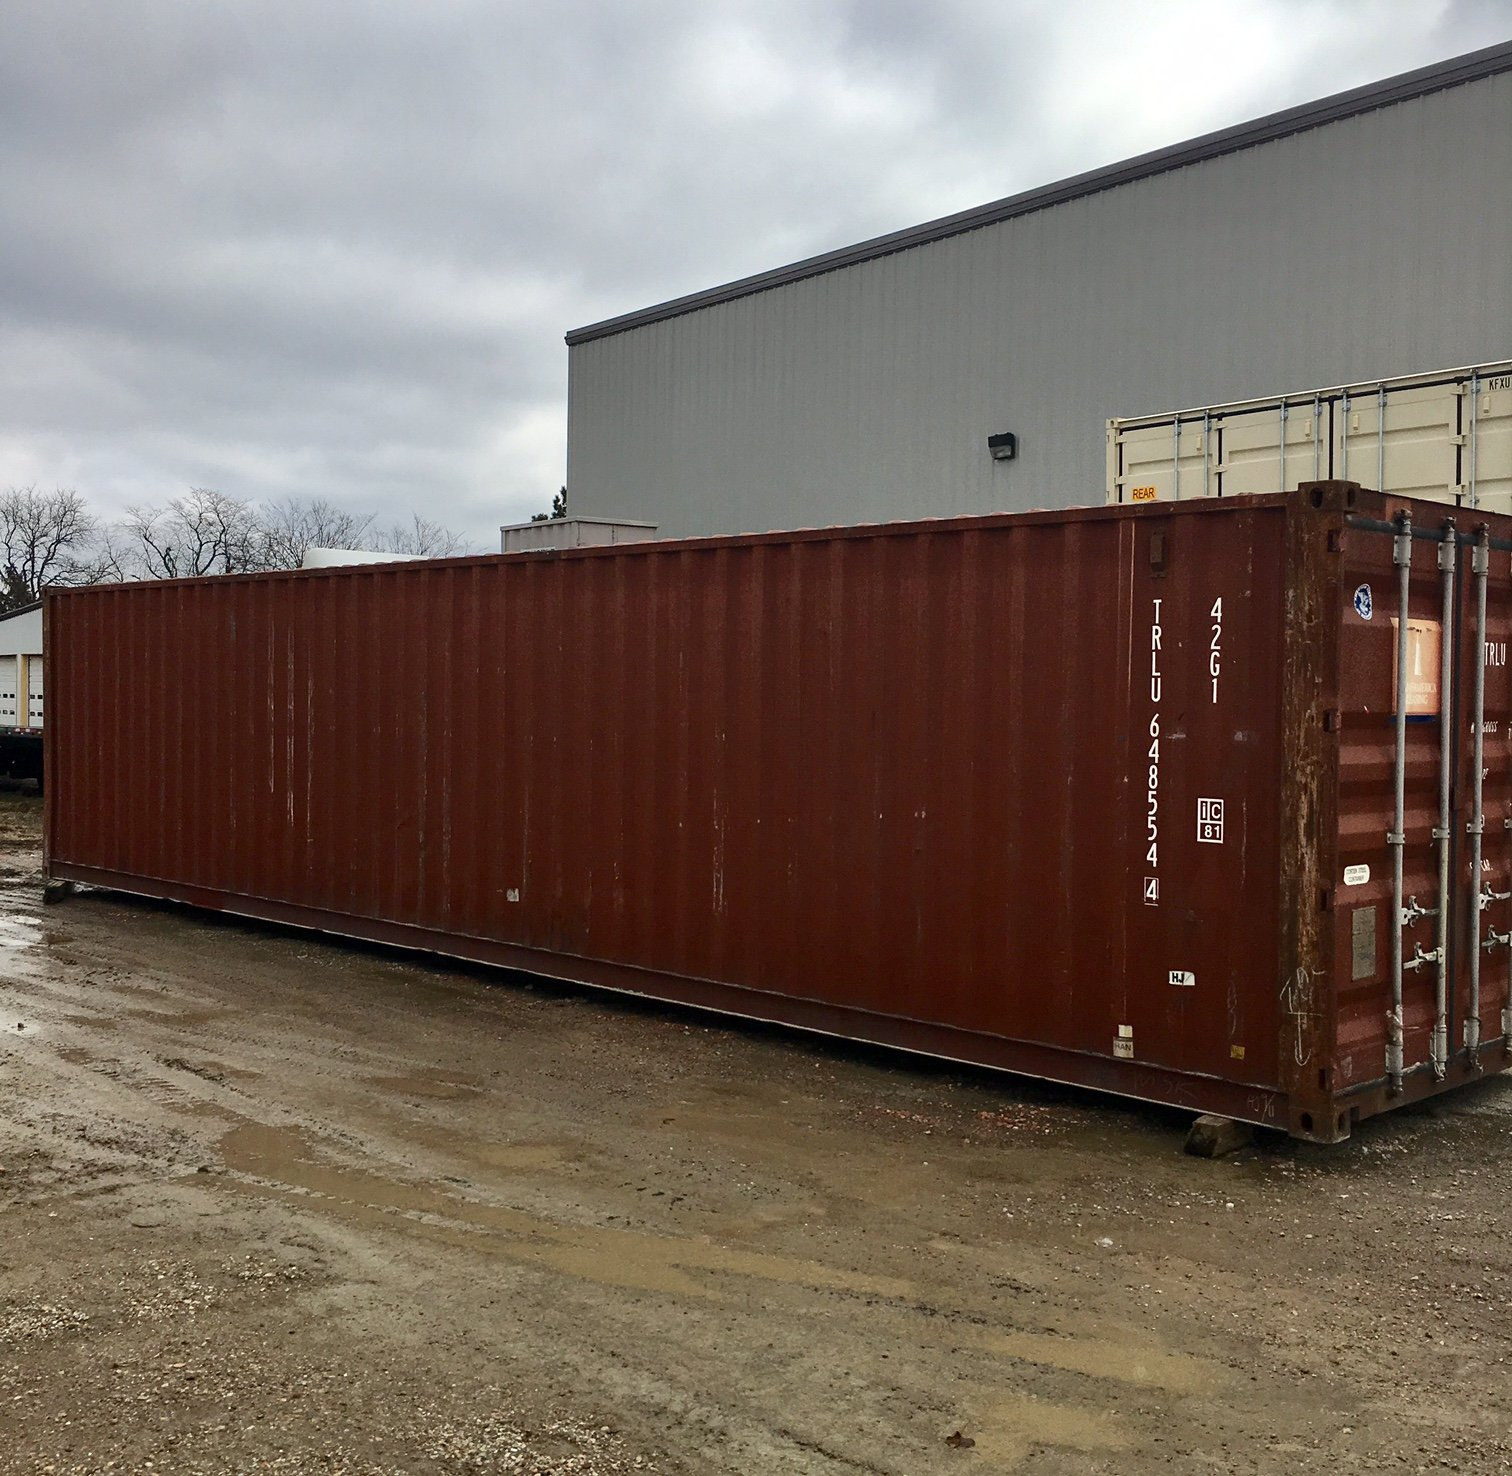 Peoria Storage 40 Ft Used Storage Container Mobile Maxx Peoria Illinois